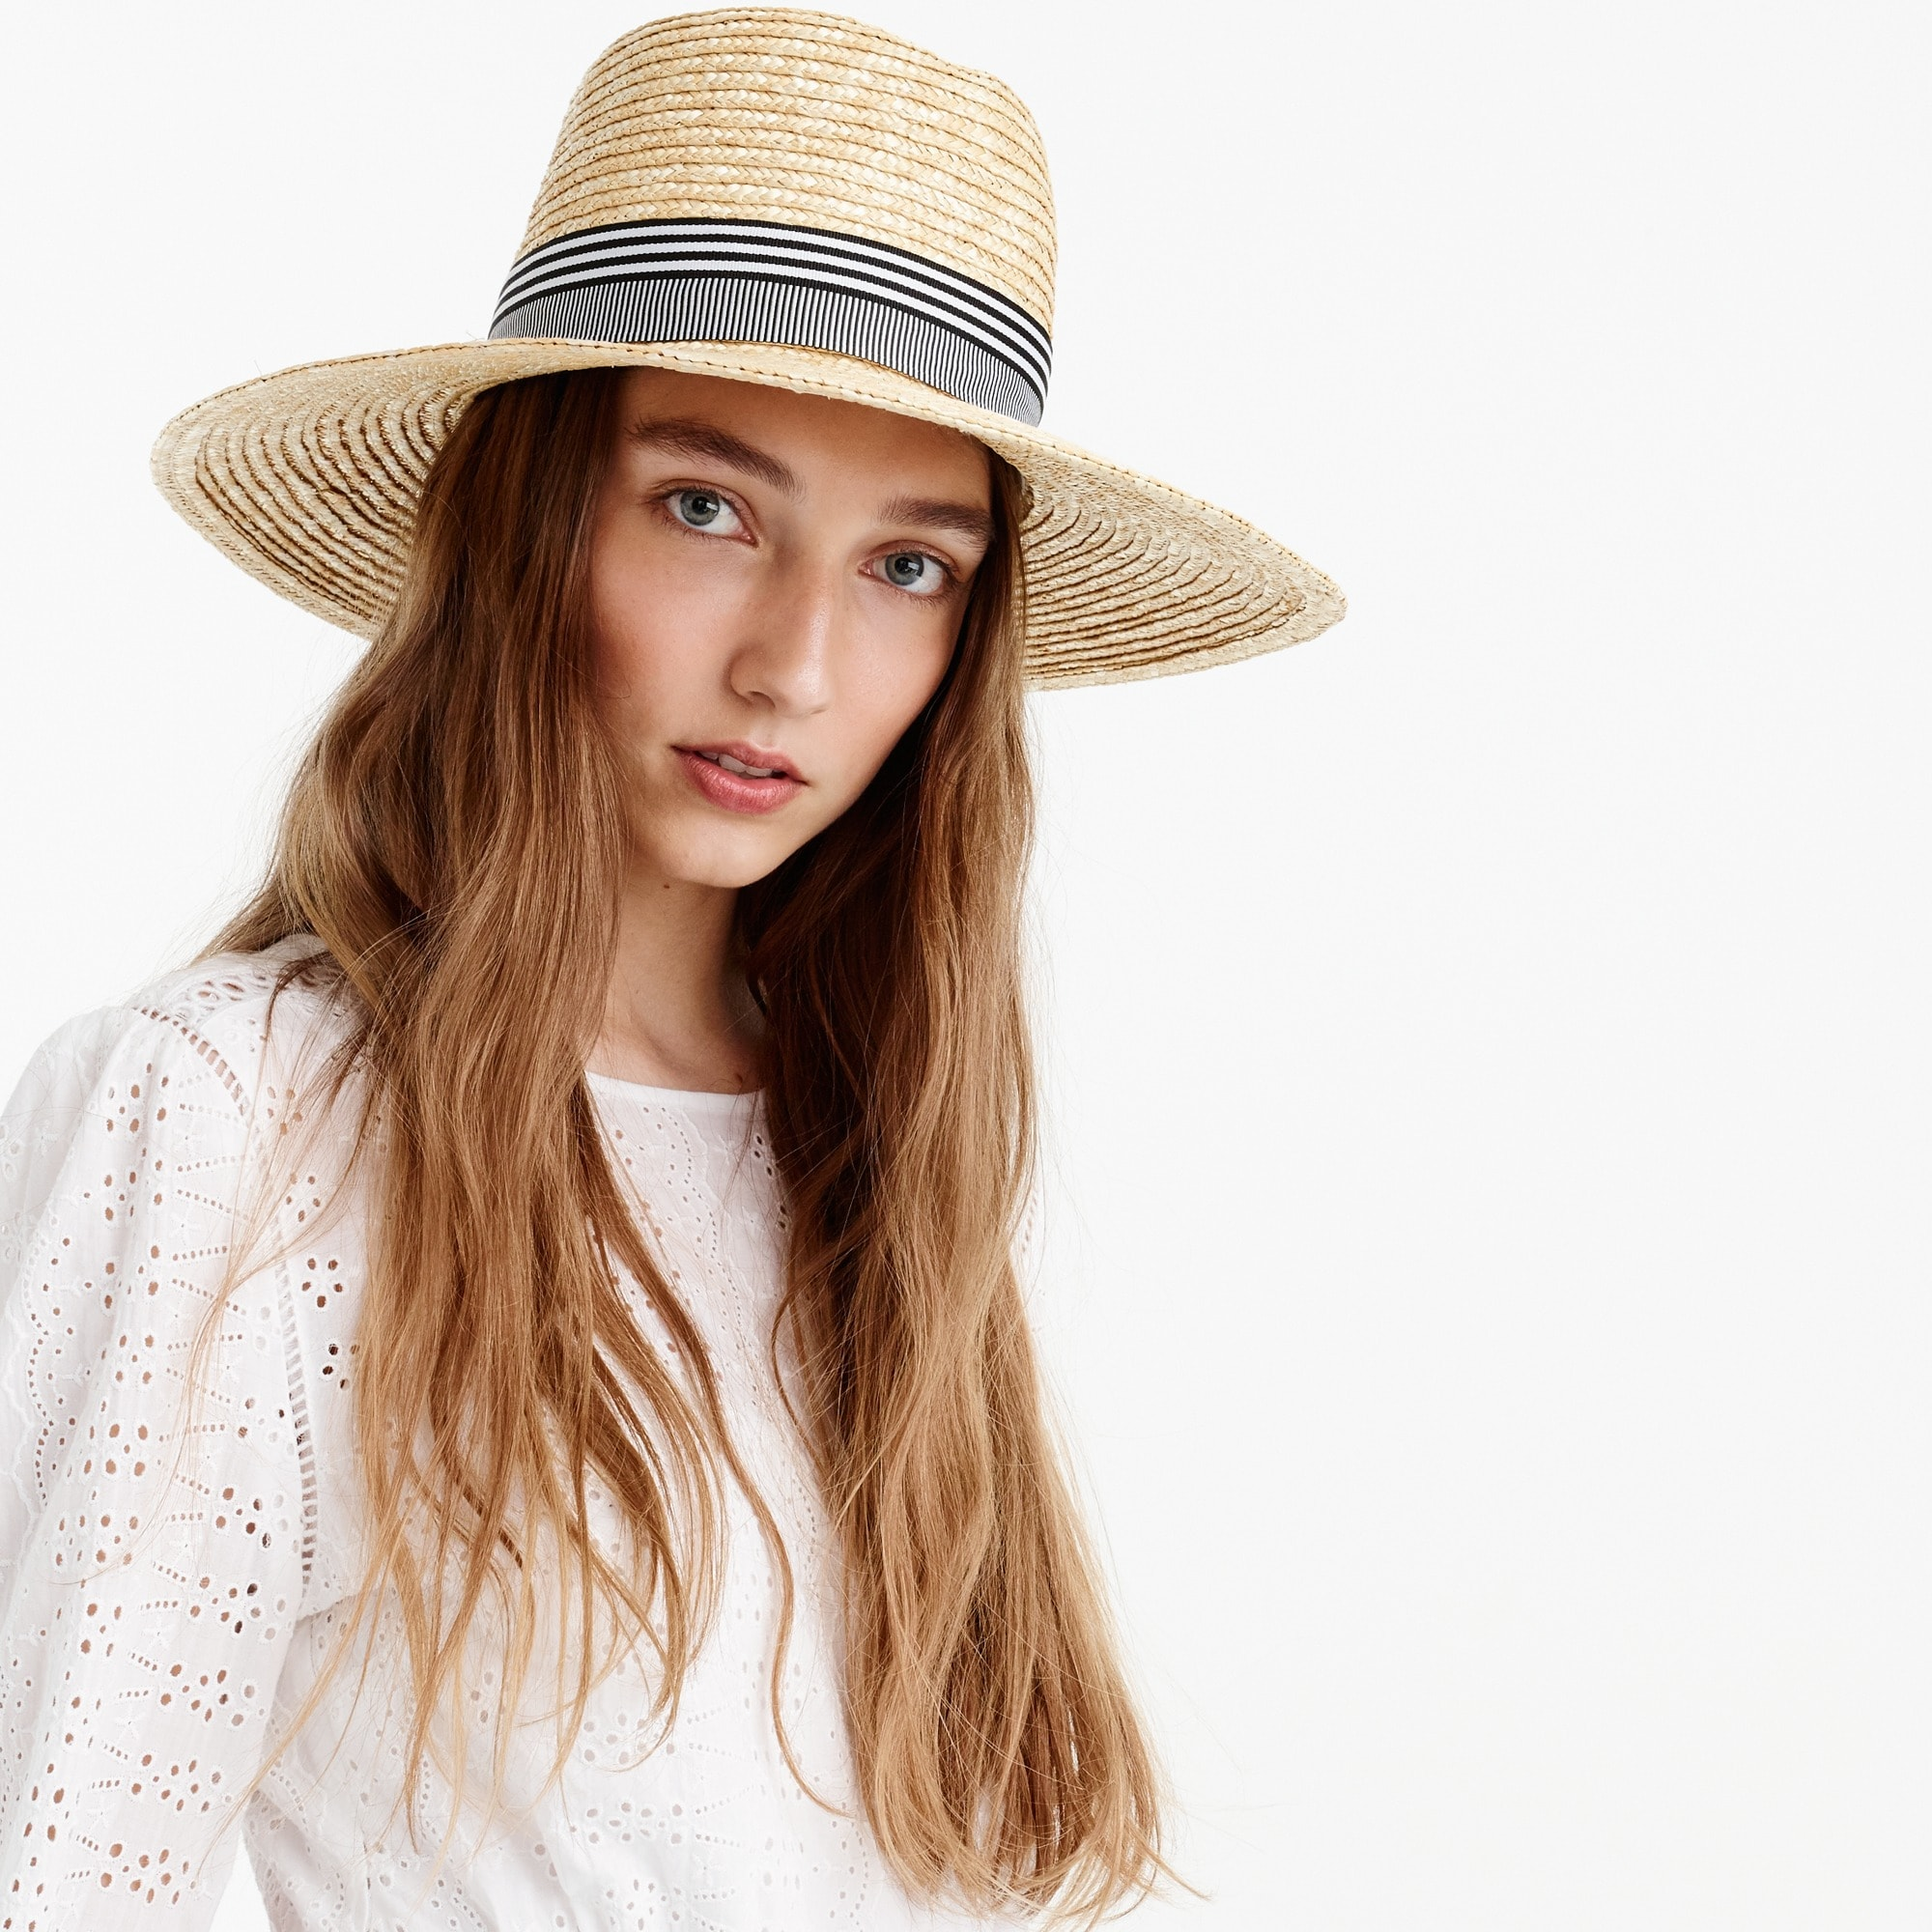 Straw hat with grosgrain ribbon women new arrivals c